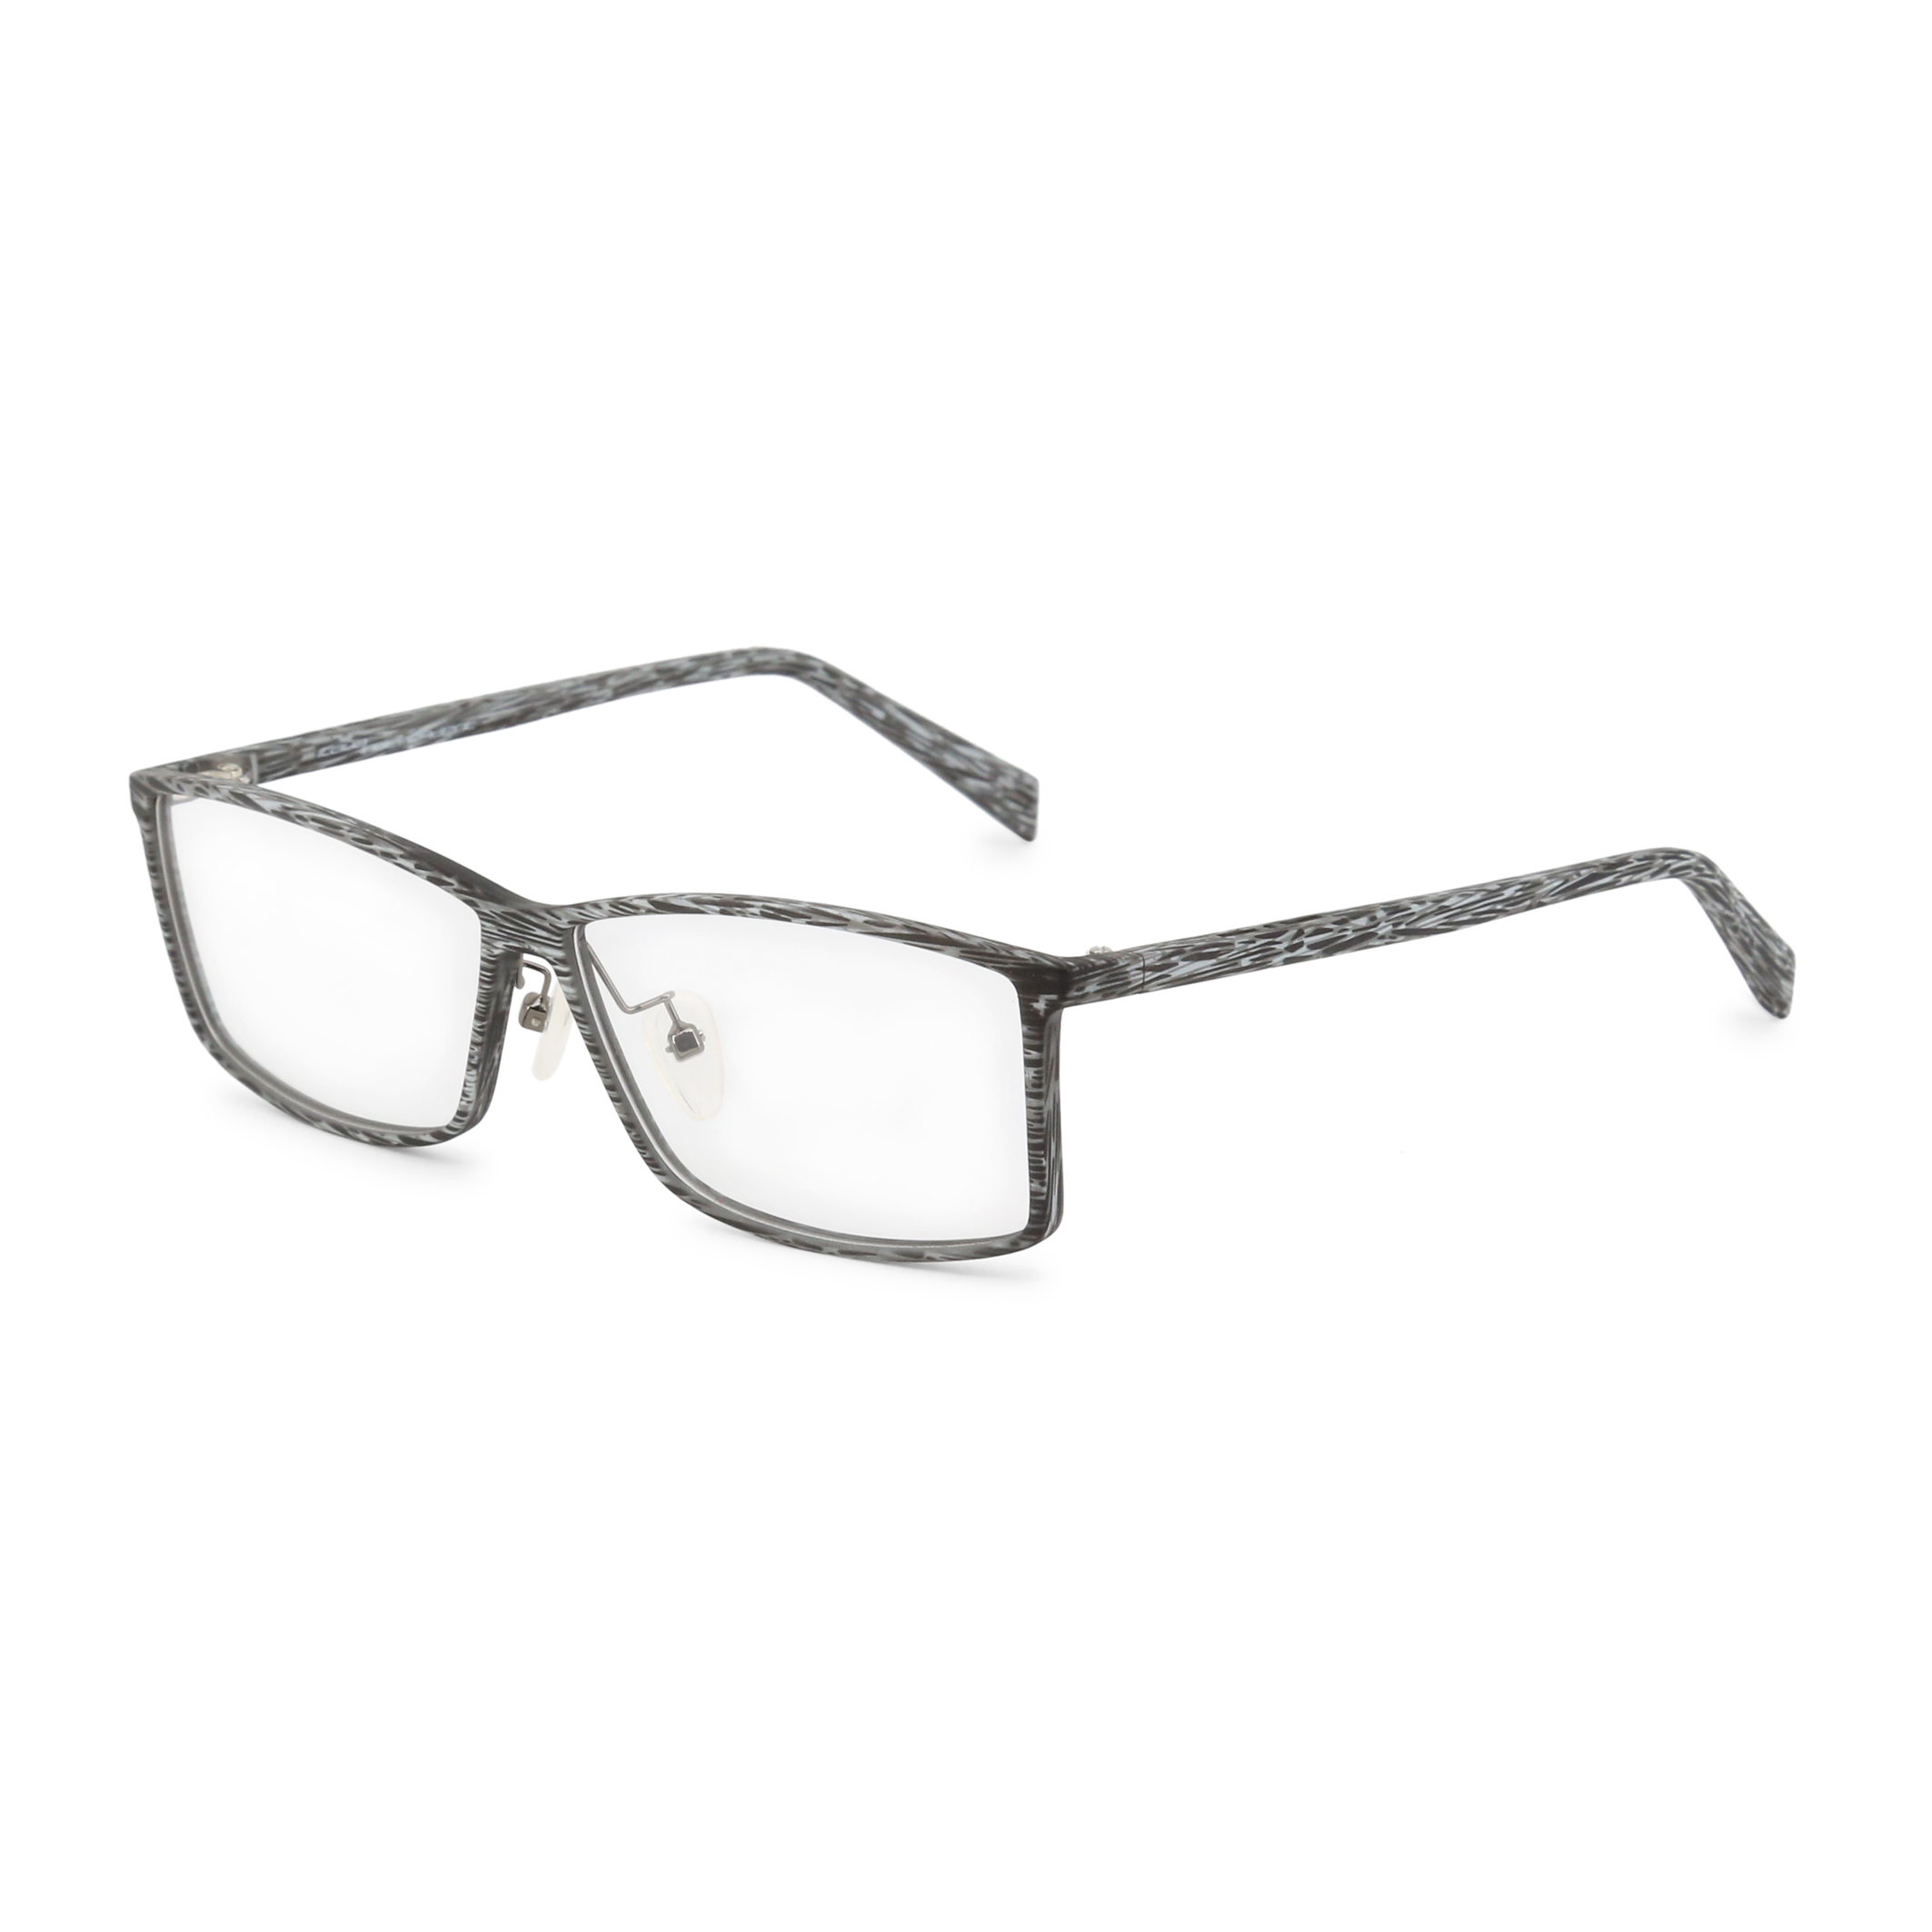 Lunettes Italia Independent – 5600A